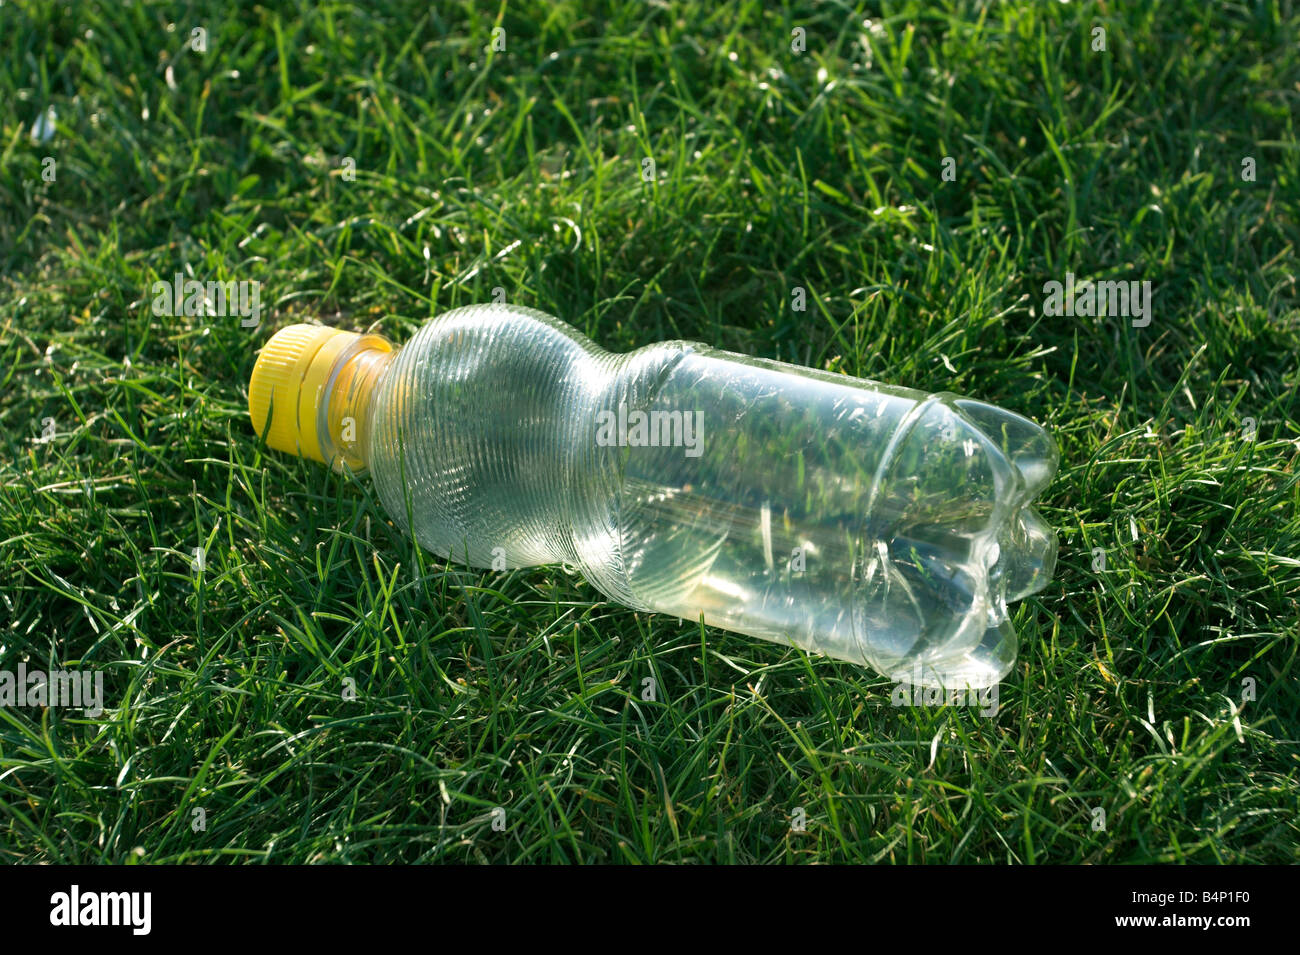 a plastic bottle dumped on the grass - Stock Image